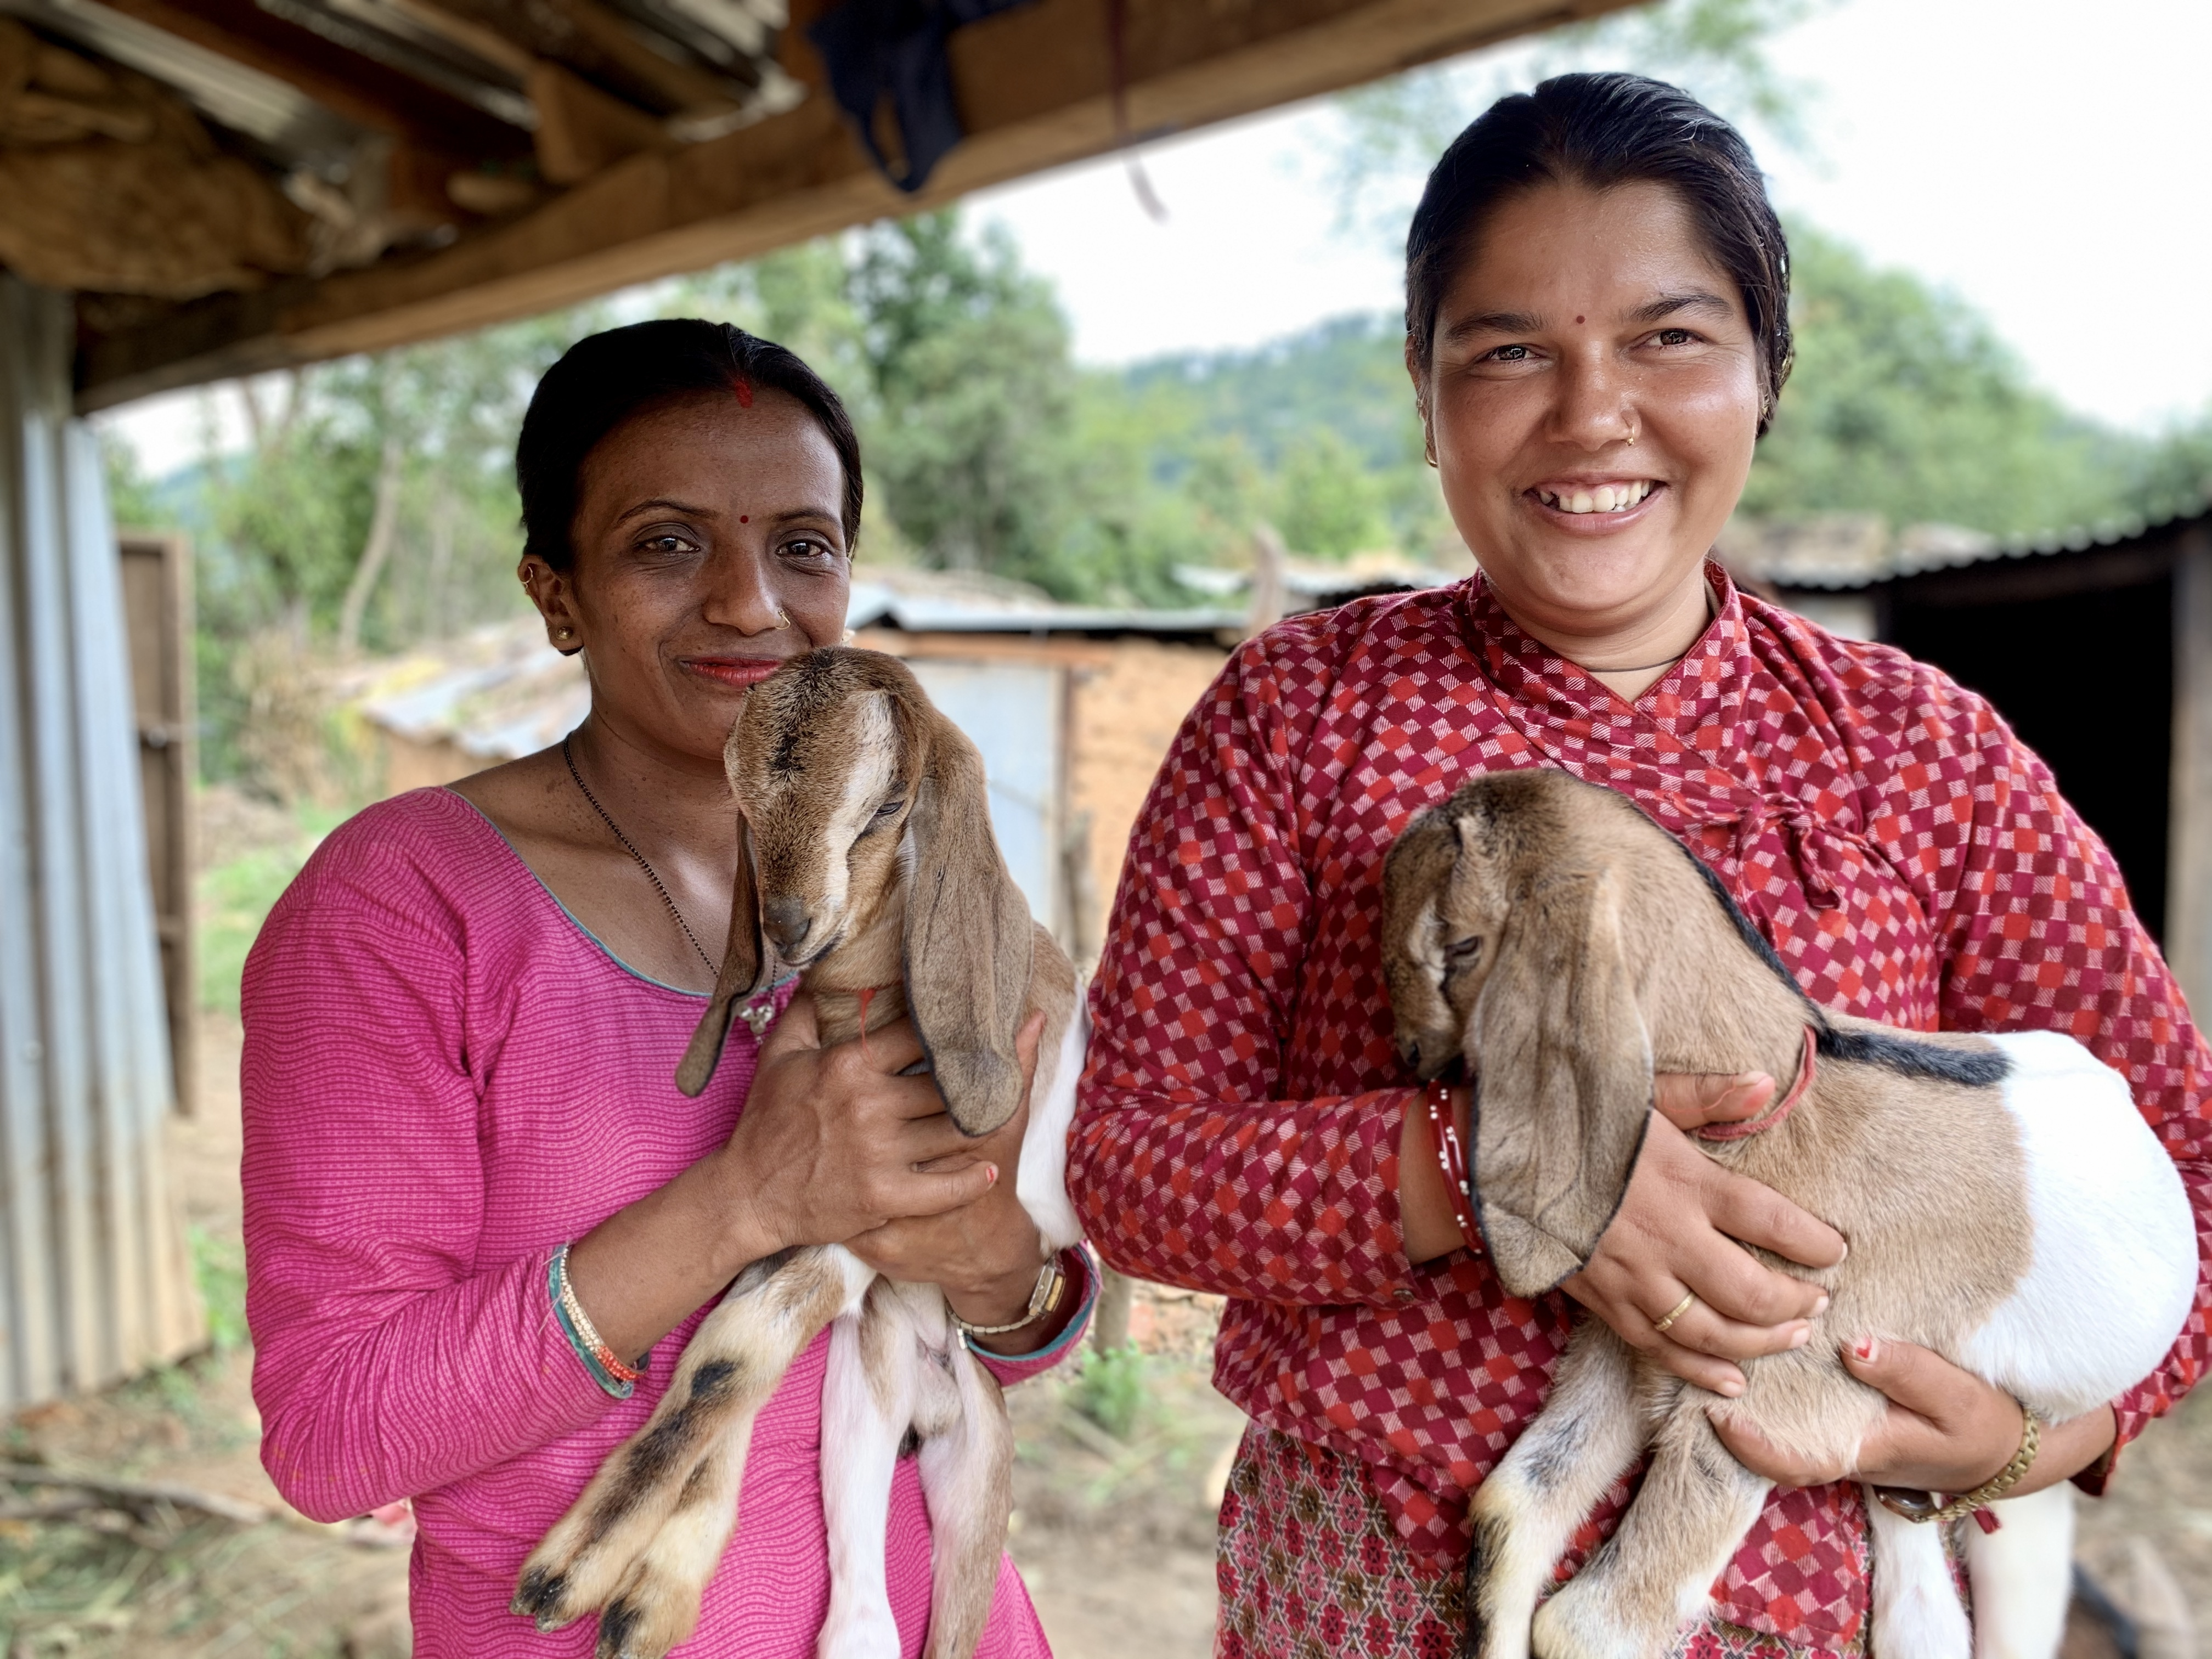 Kamala Sapkota (right), with her sister Pompa Humagaim, at her home in the hills of Kavrepalanchok, Nepal. With your support, Kamala graduated from  a mental health program. They are holding baby goats that Kamala was given through the project which allow her to earn income and live independently. (MCC photo/ Paul Shetler Fast)